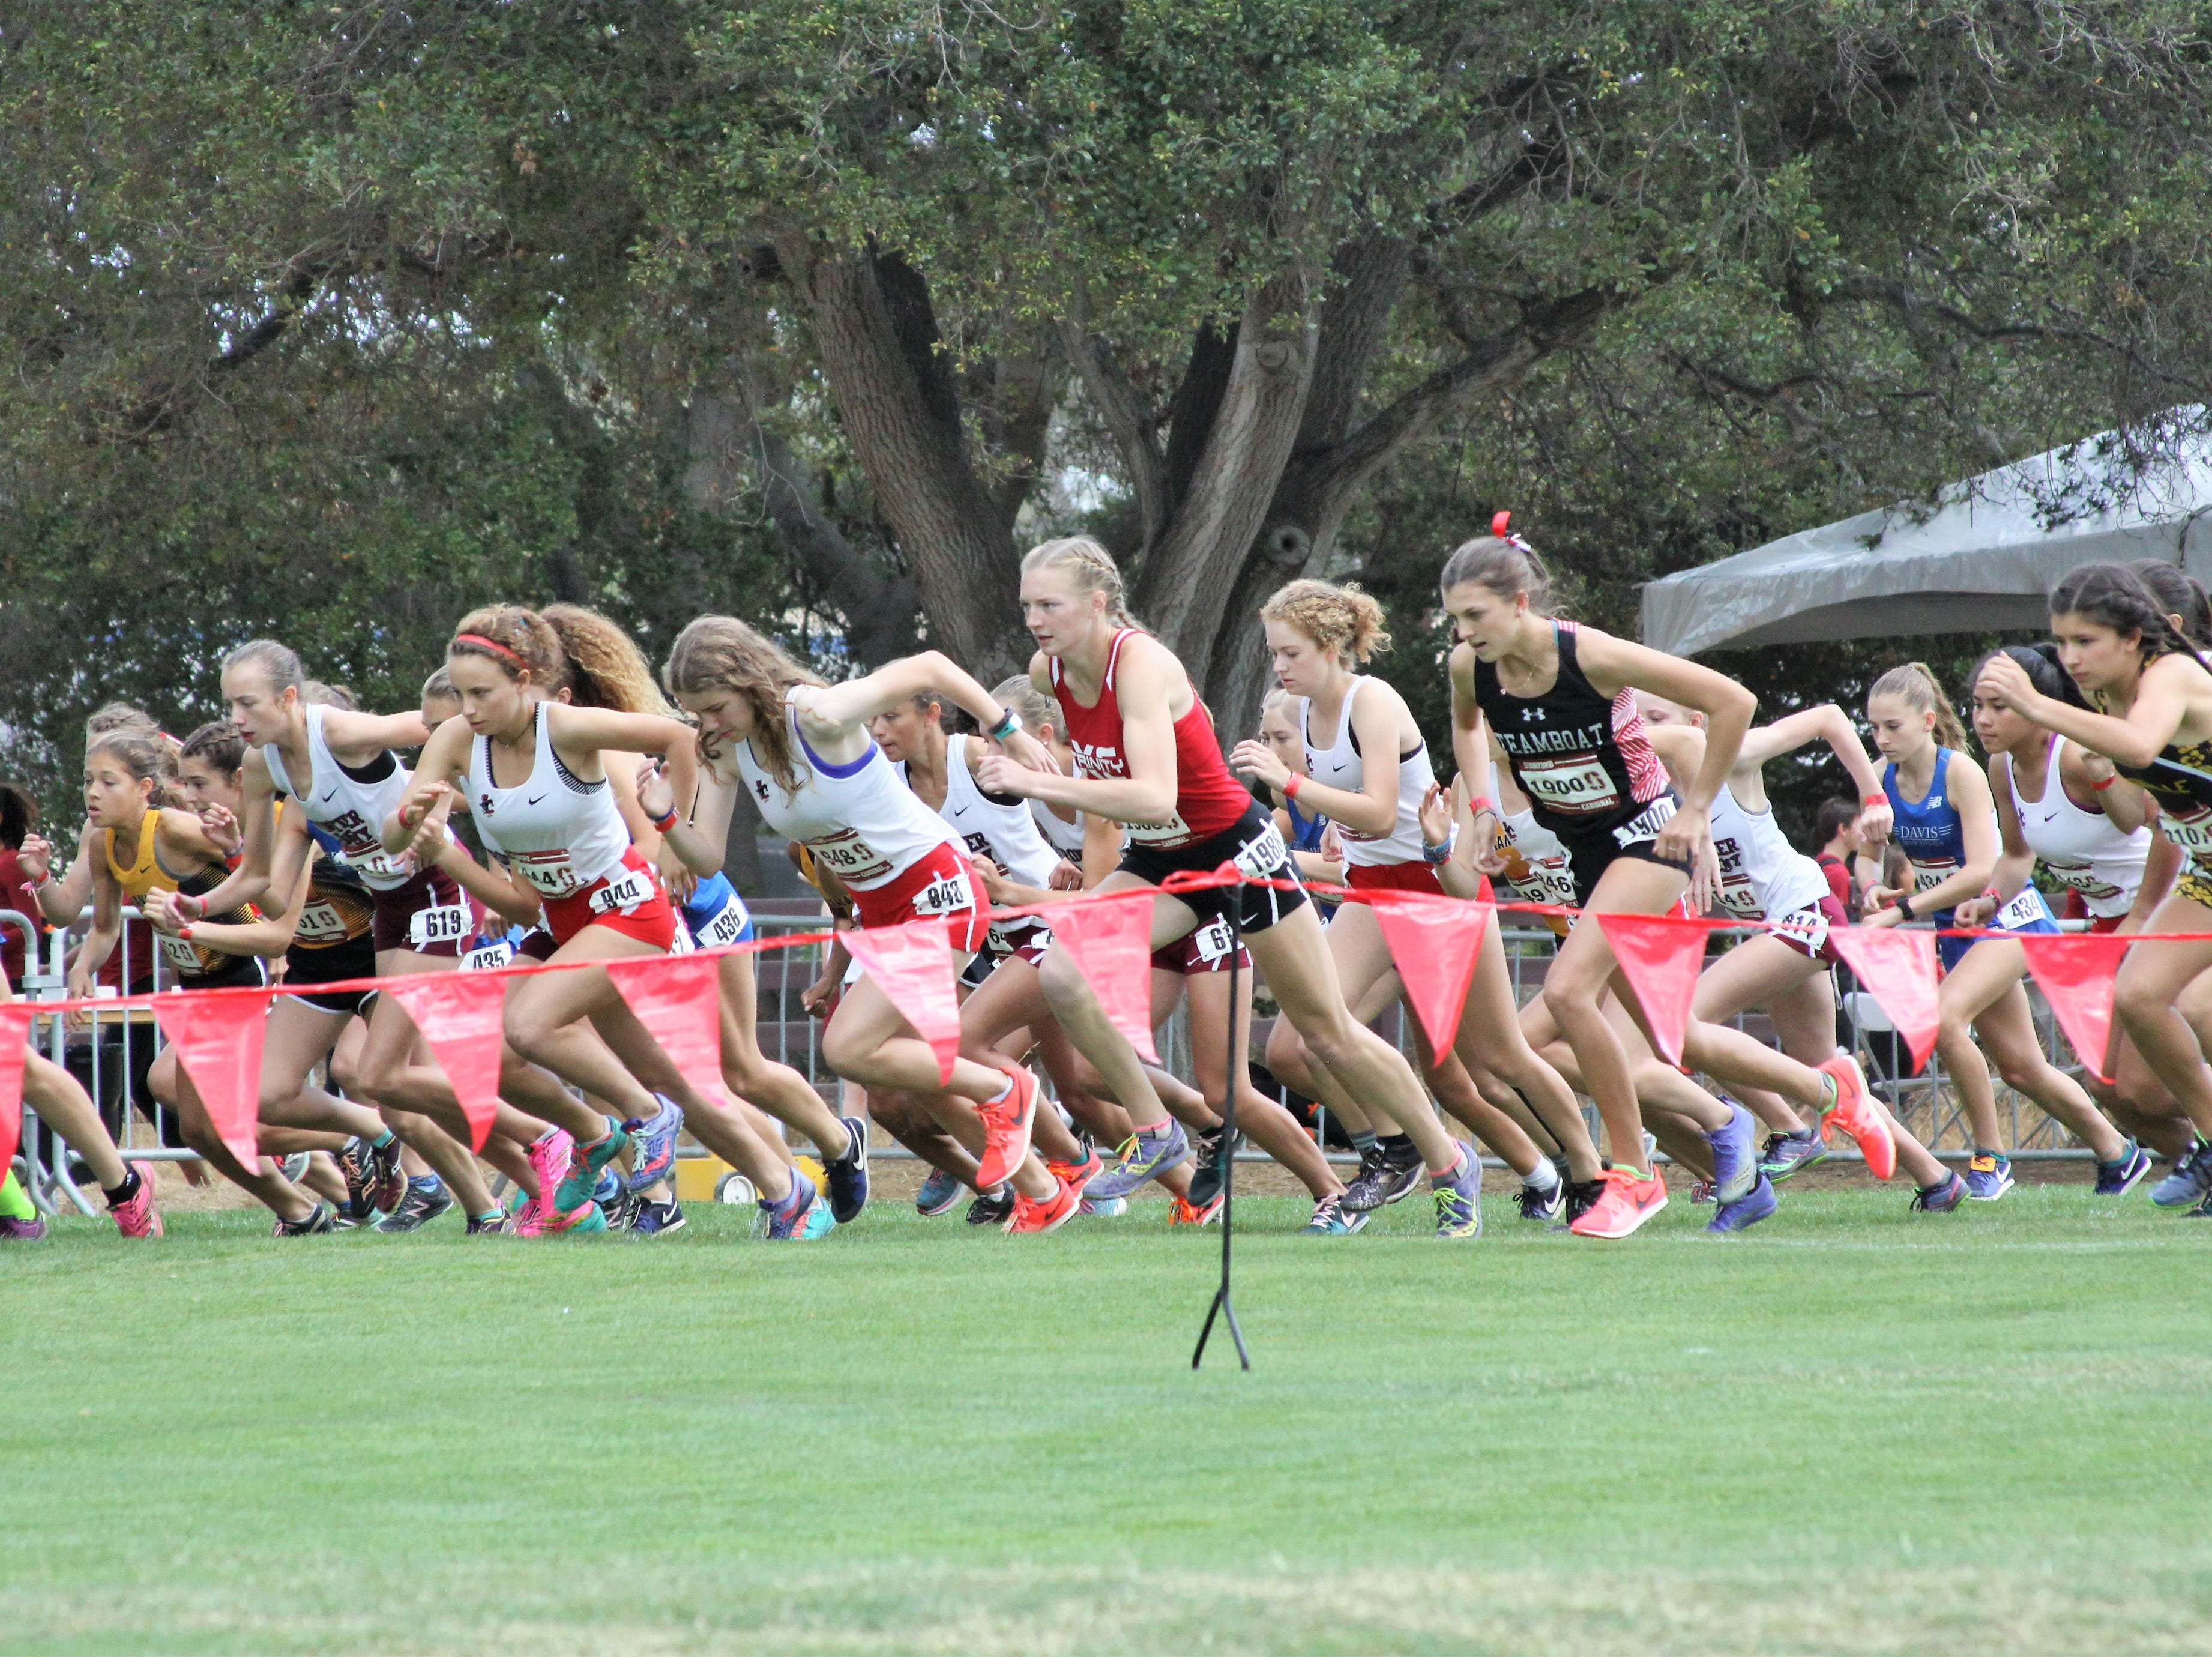 Trinity runner Lauren Harper signed with Division-I program San Diego State on Friday, Nov. 16. Harper is Trinity's first athlete to have an early signing with an NCAA program.